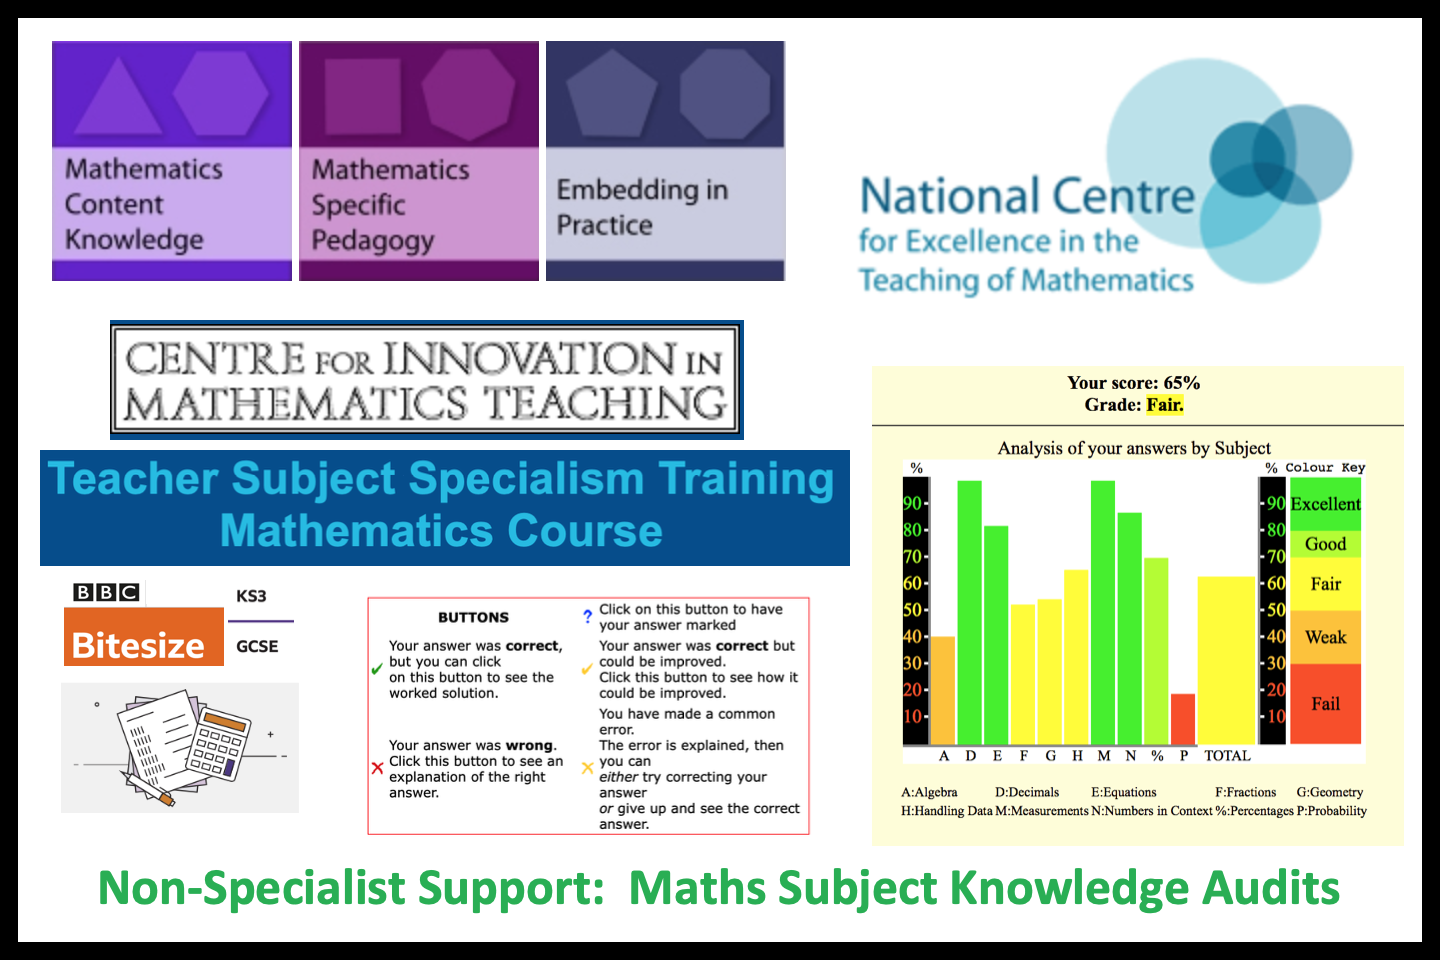 Non-Specialist Teachers: Your Maths Subject Knowledge